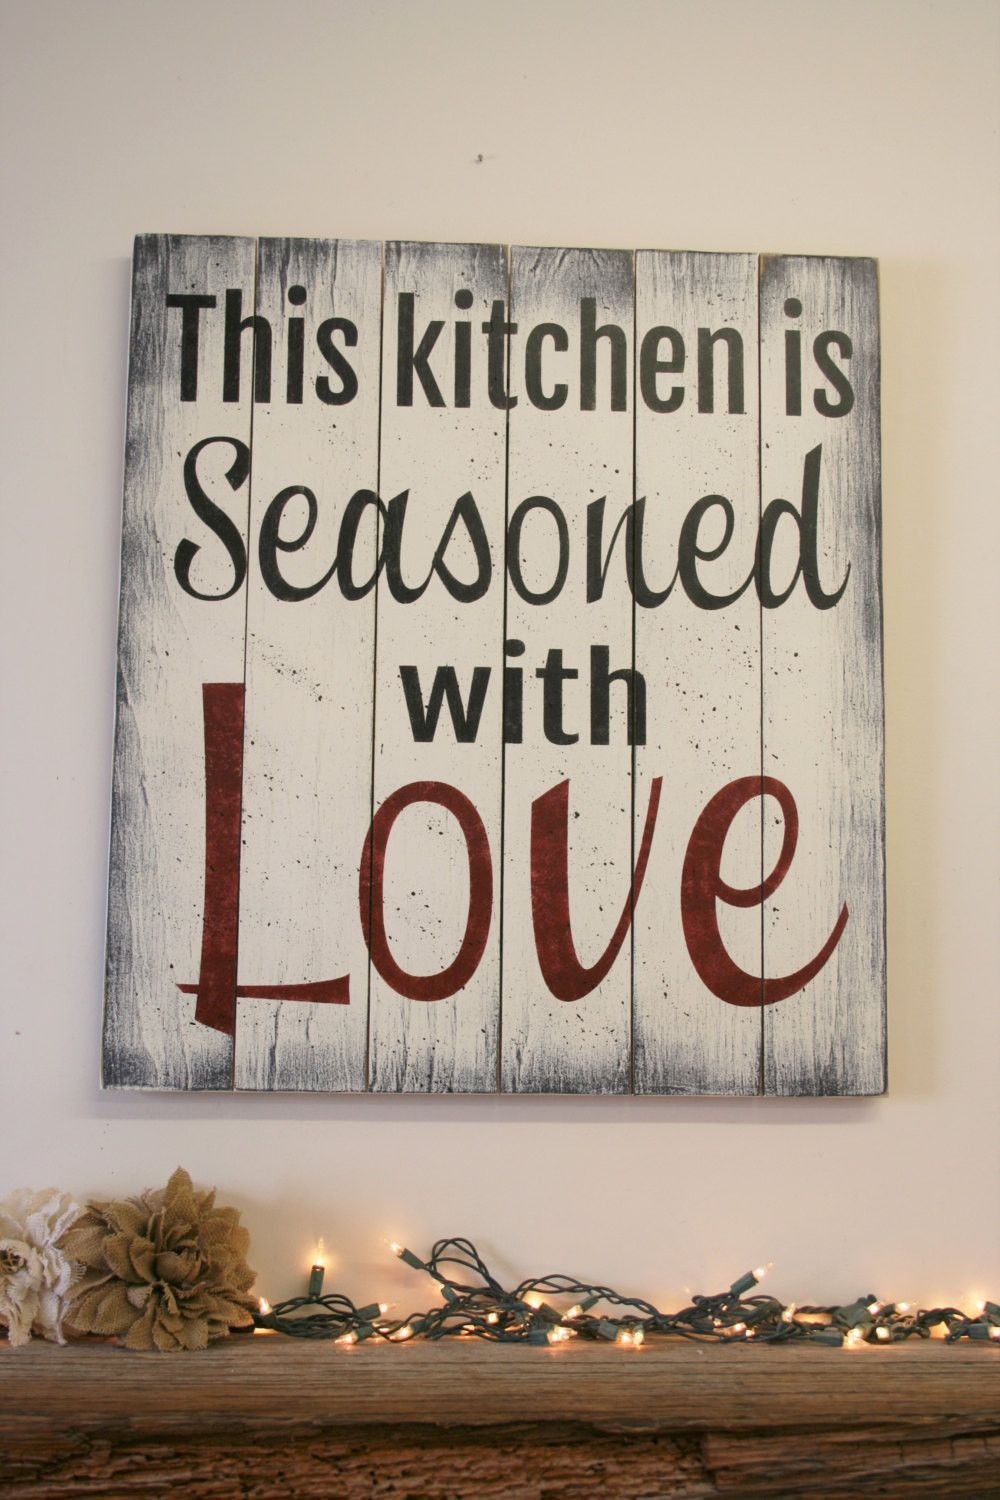 Novel Küchen Bilder This Kitchen Is Seasoned With Love Wood Wall Sign Signs